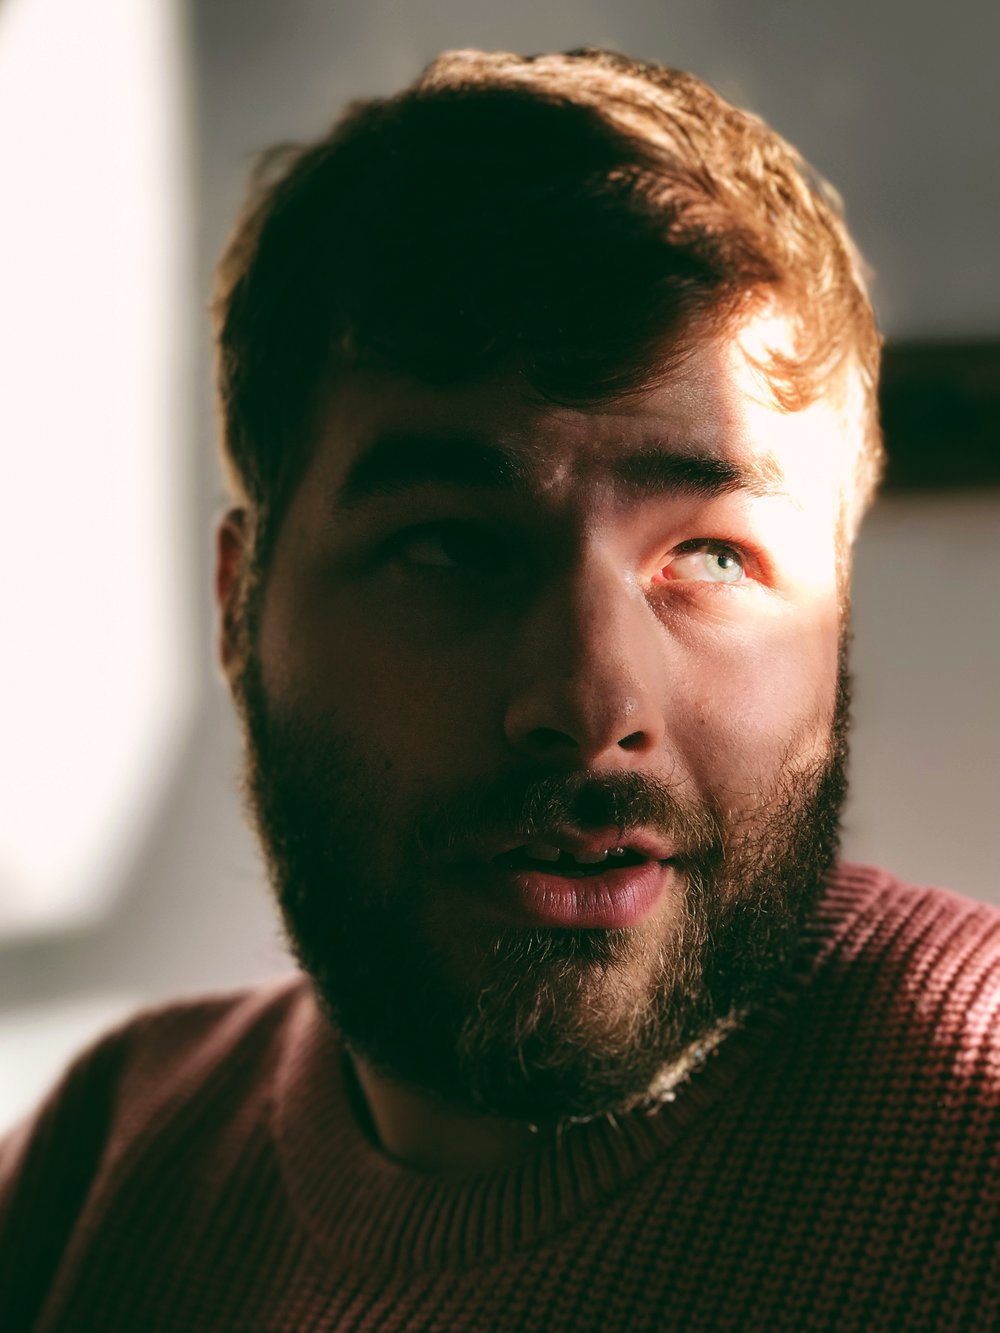 Indoor portrait of my boyfriend with available indoor light. Exposure 1/60 at f/2.8. Edited with VSCO.